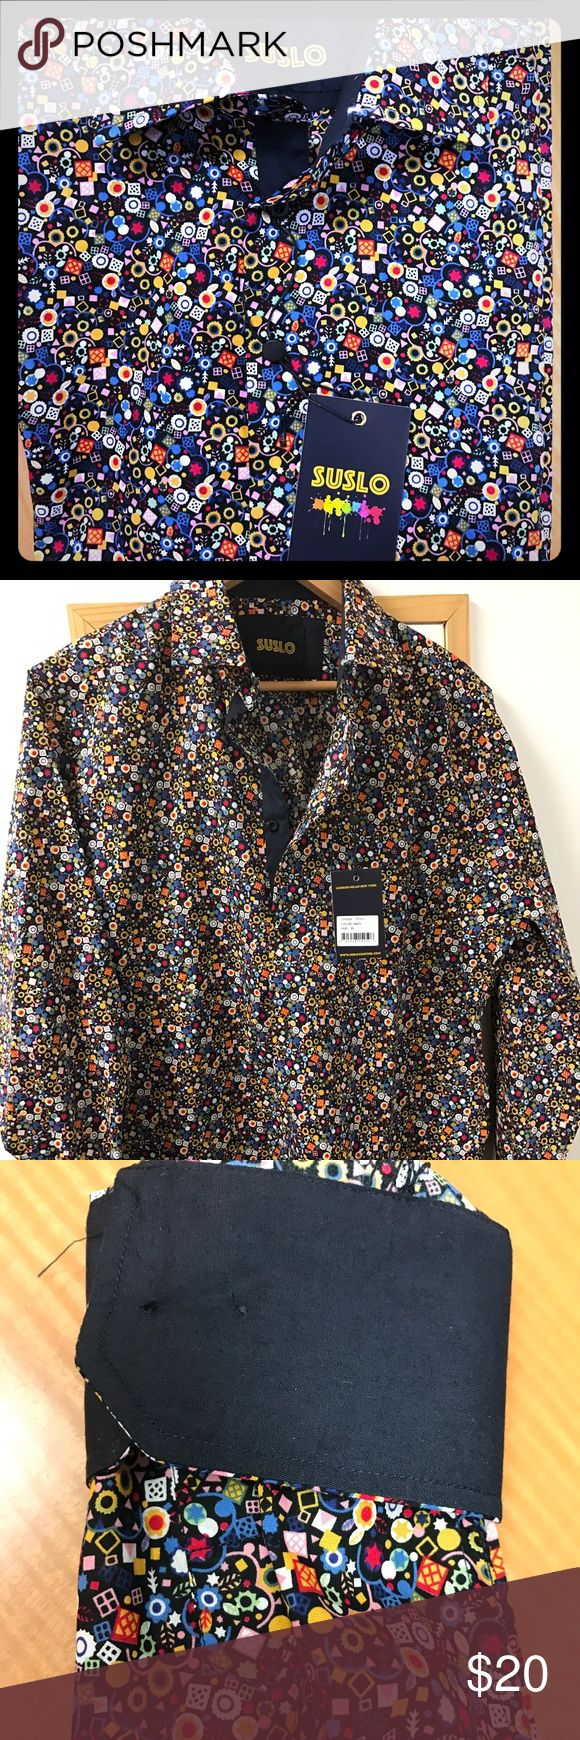 Man's shirt Brand new men's XL sushi brand shirt. Colorful design all over with navy blue cuffs Suslo Shirts Casual Button Down Shirts